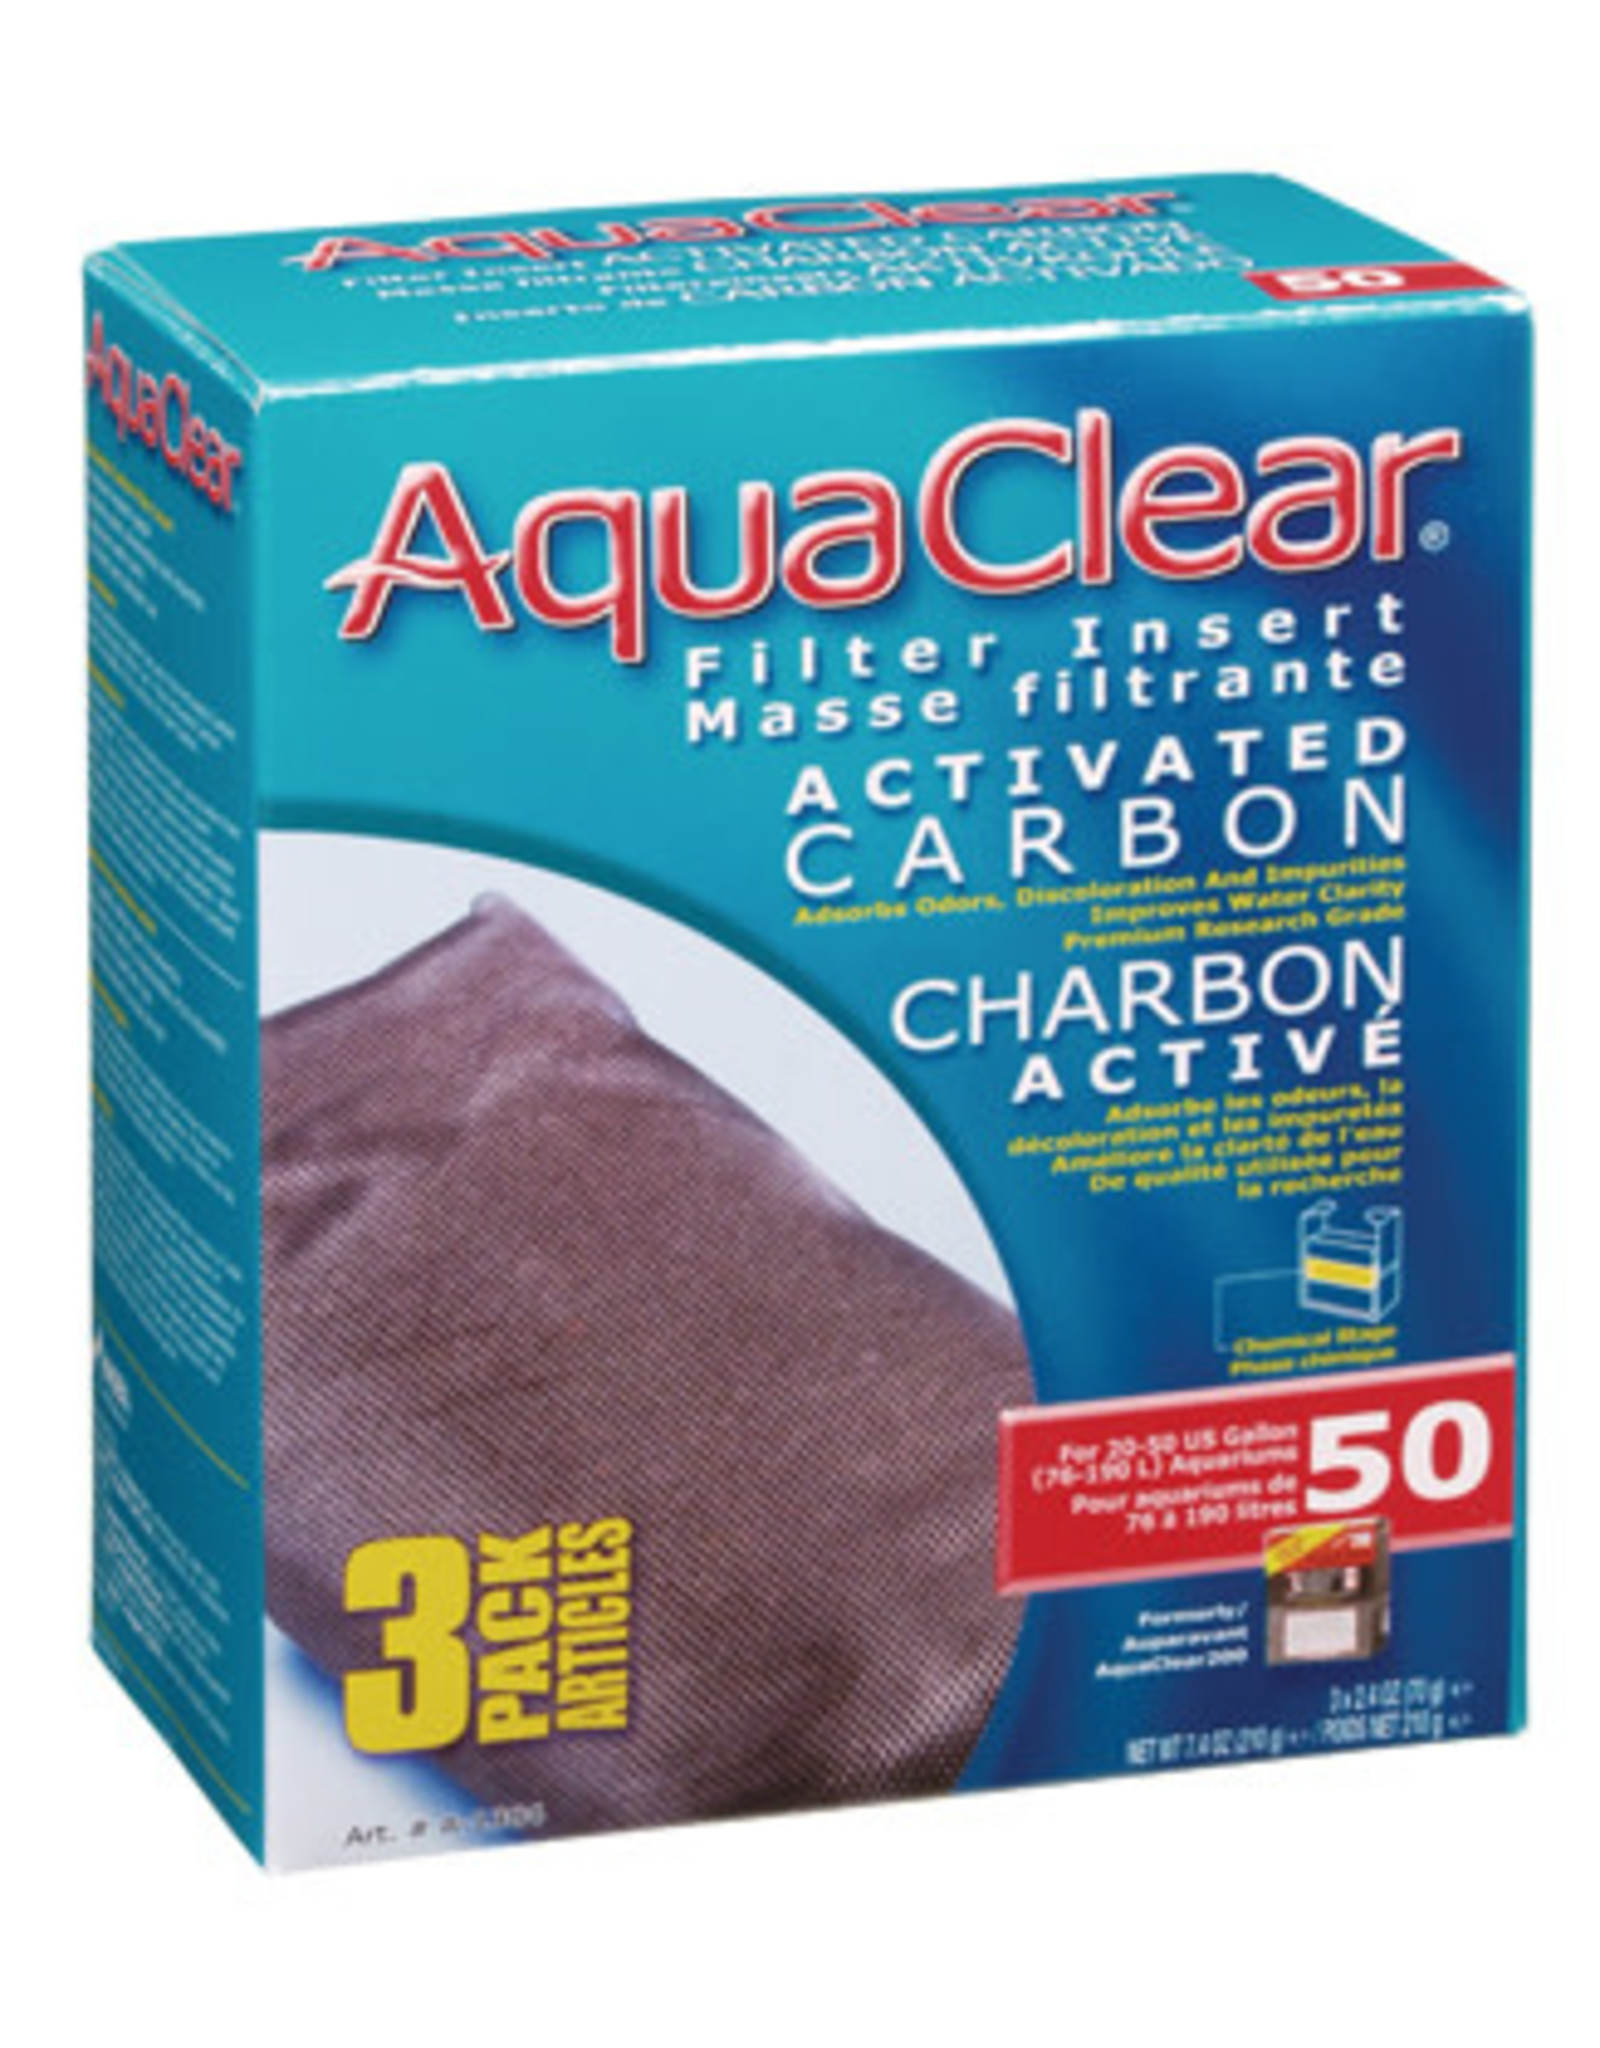 AquaClear AquaClear 50 Activated Carbon Filter Insert 3 Pack 210g